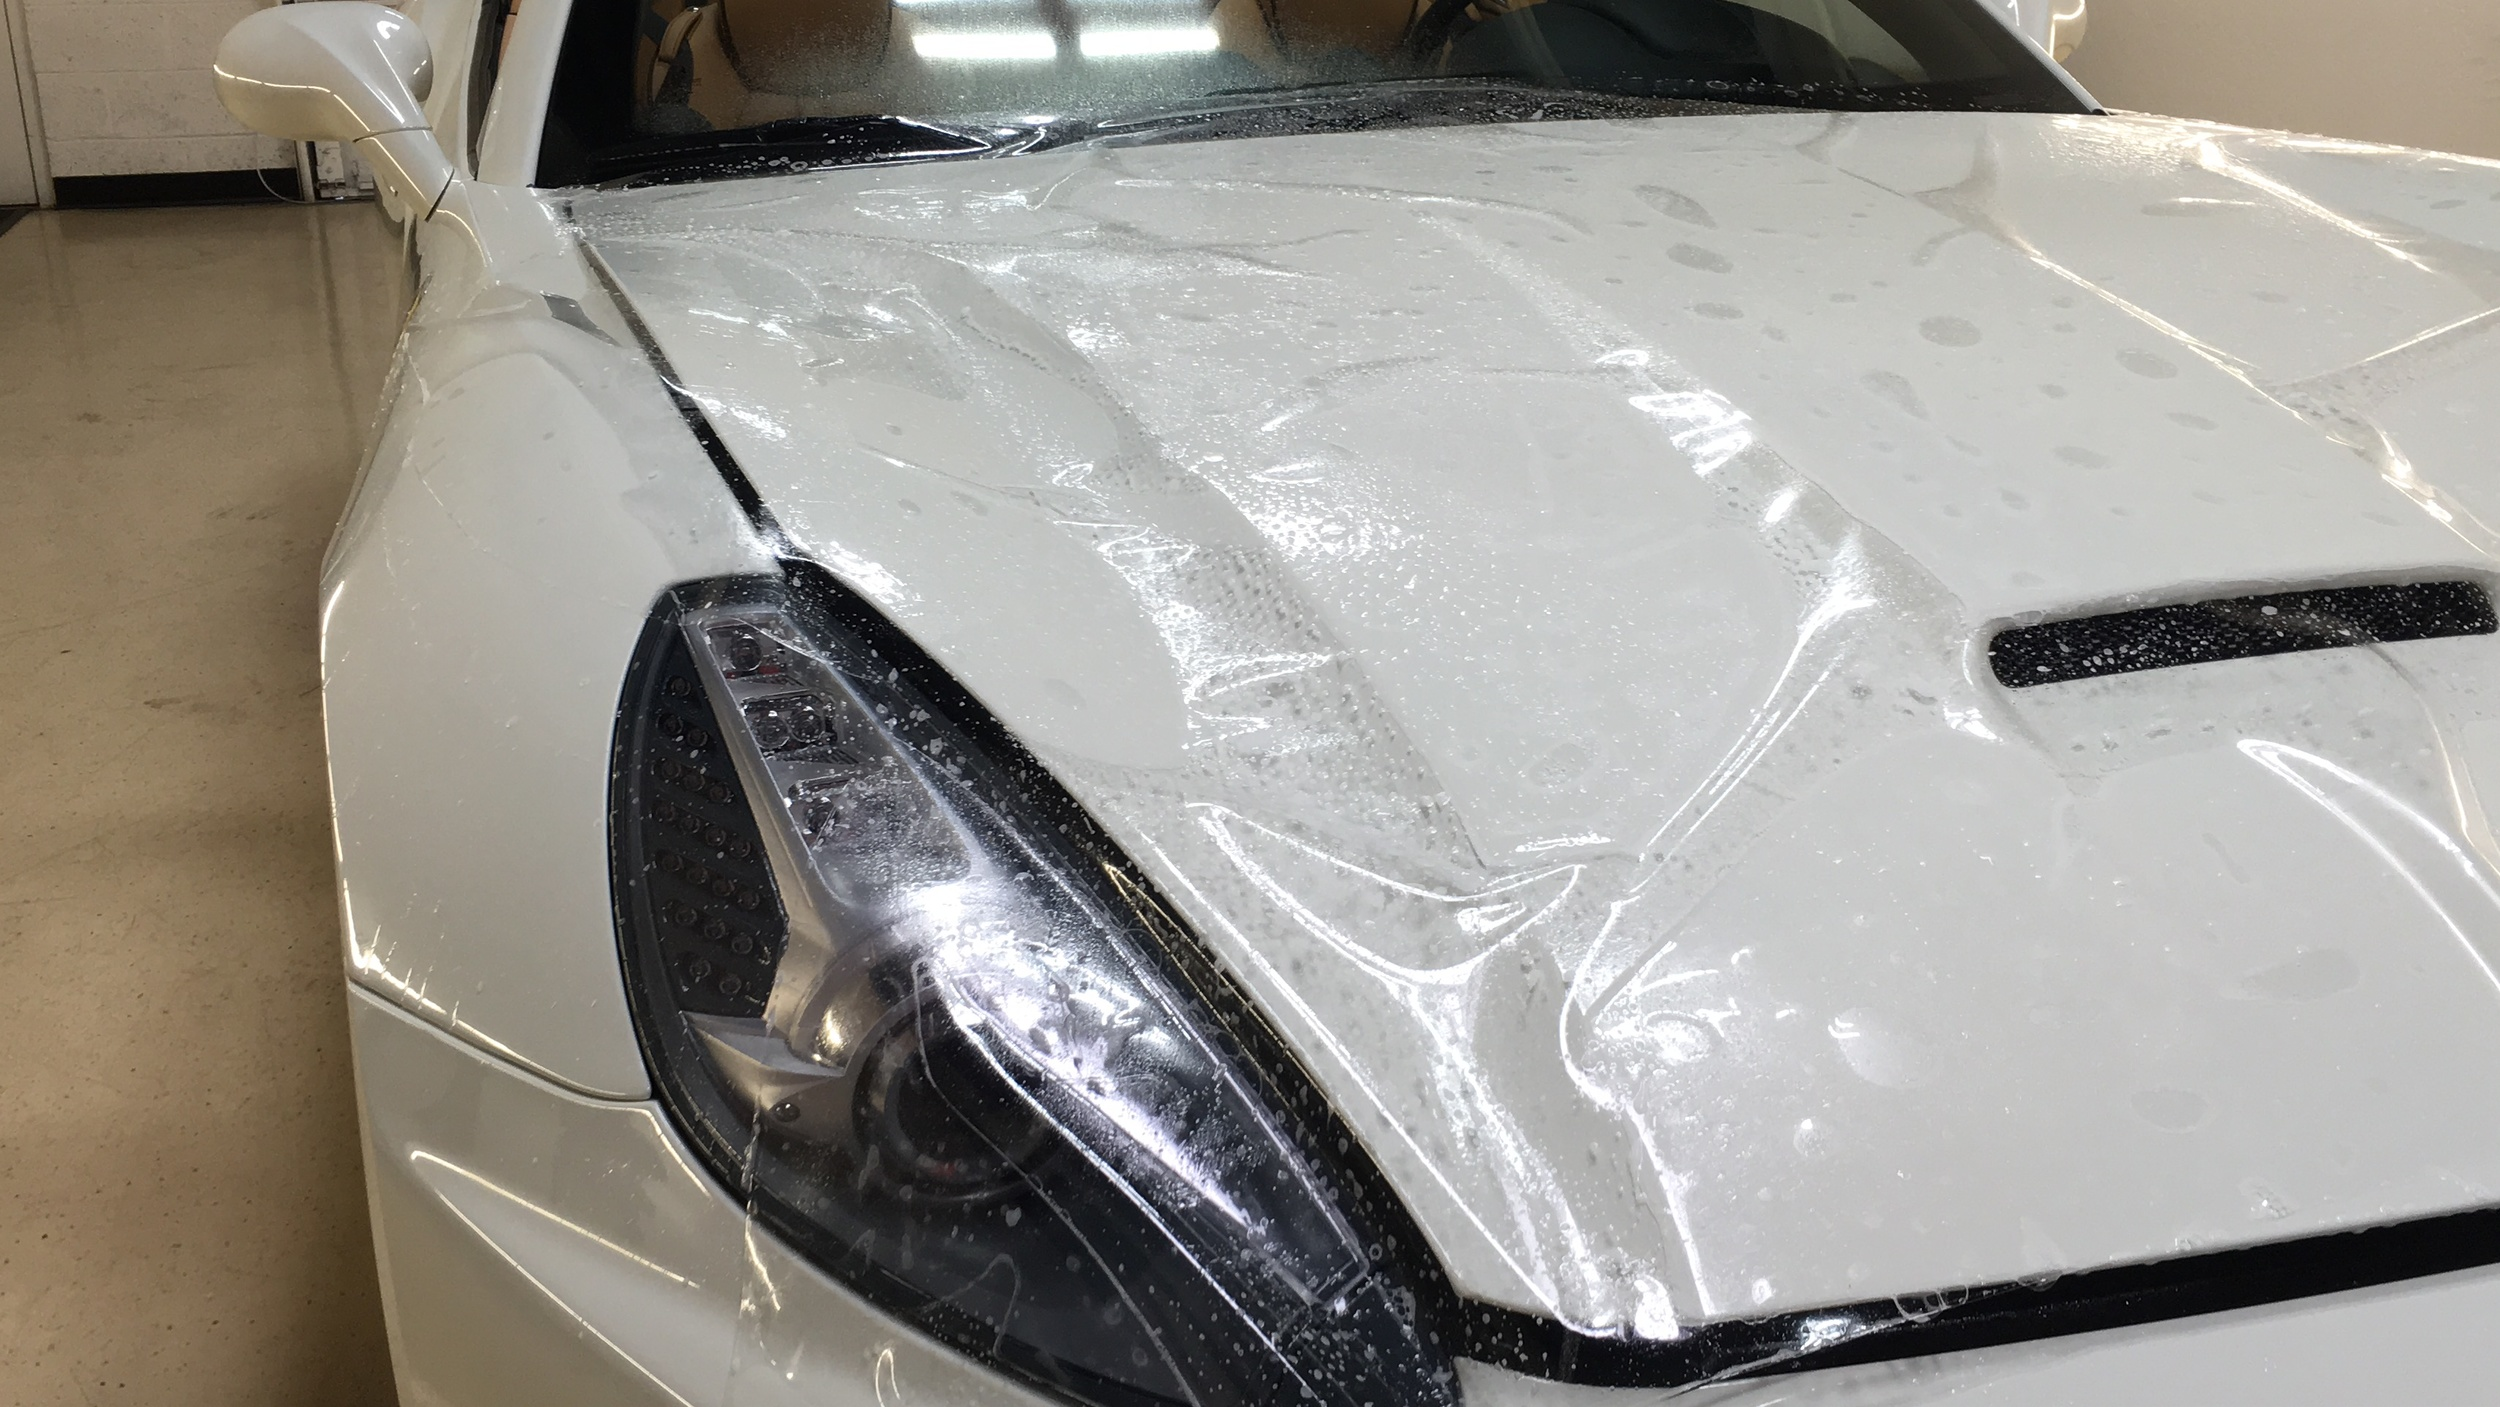 XPEL laid over hood prior to installation process